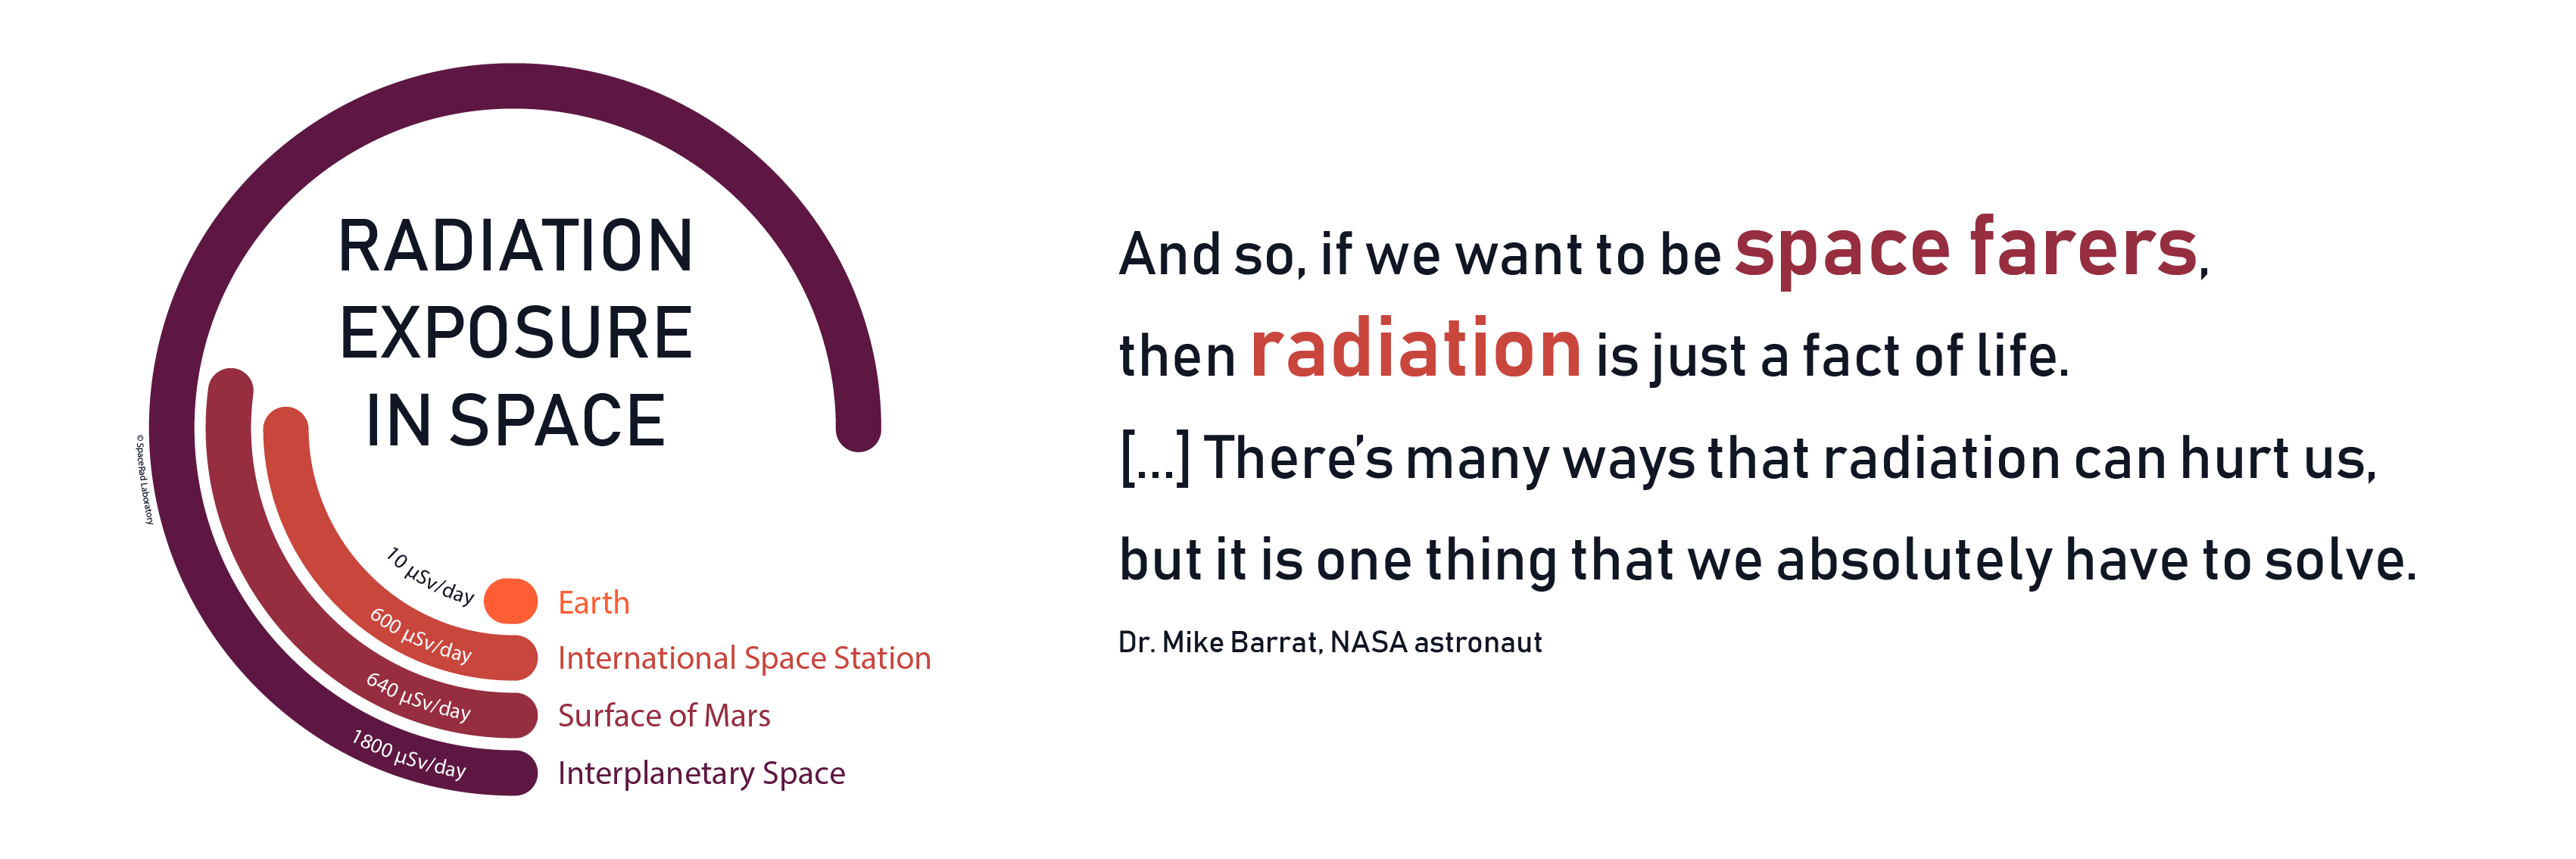 Radiation exposure in space.